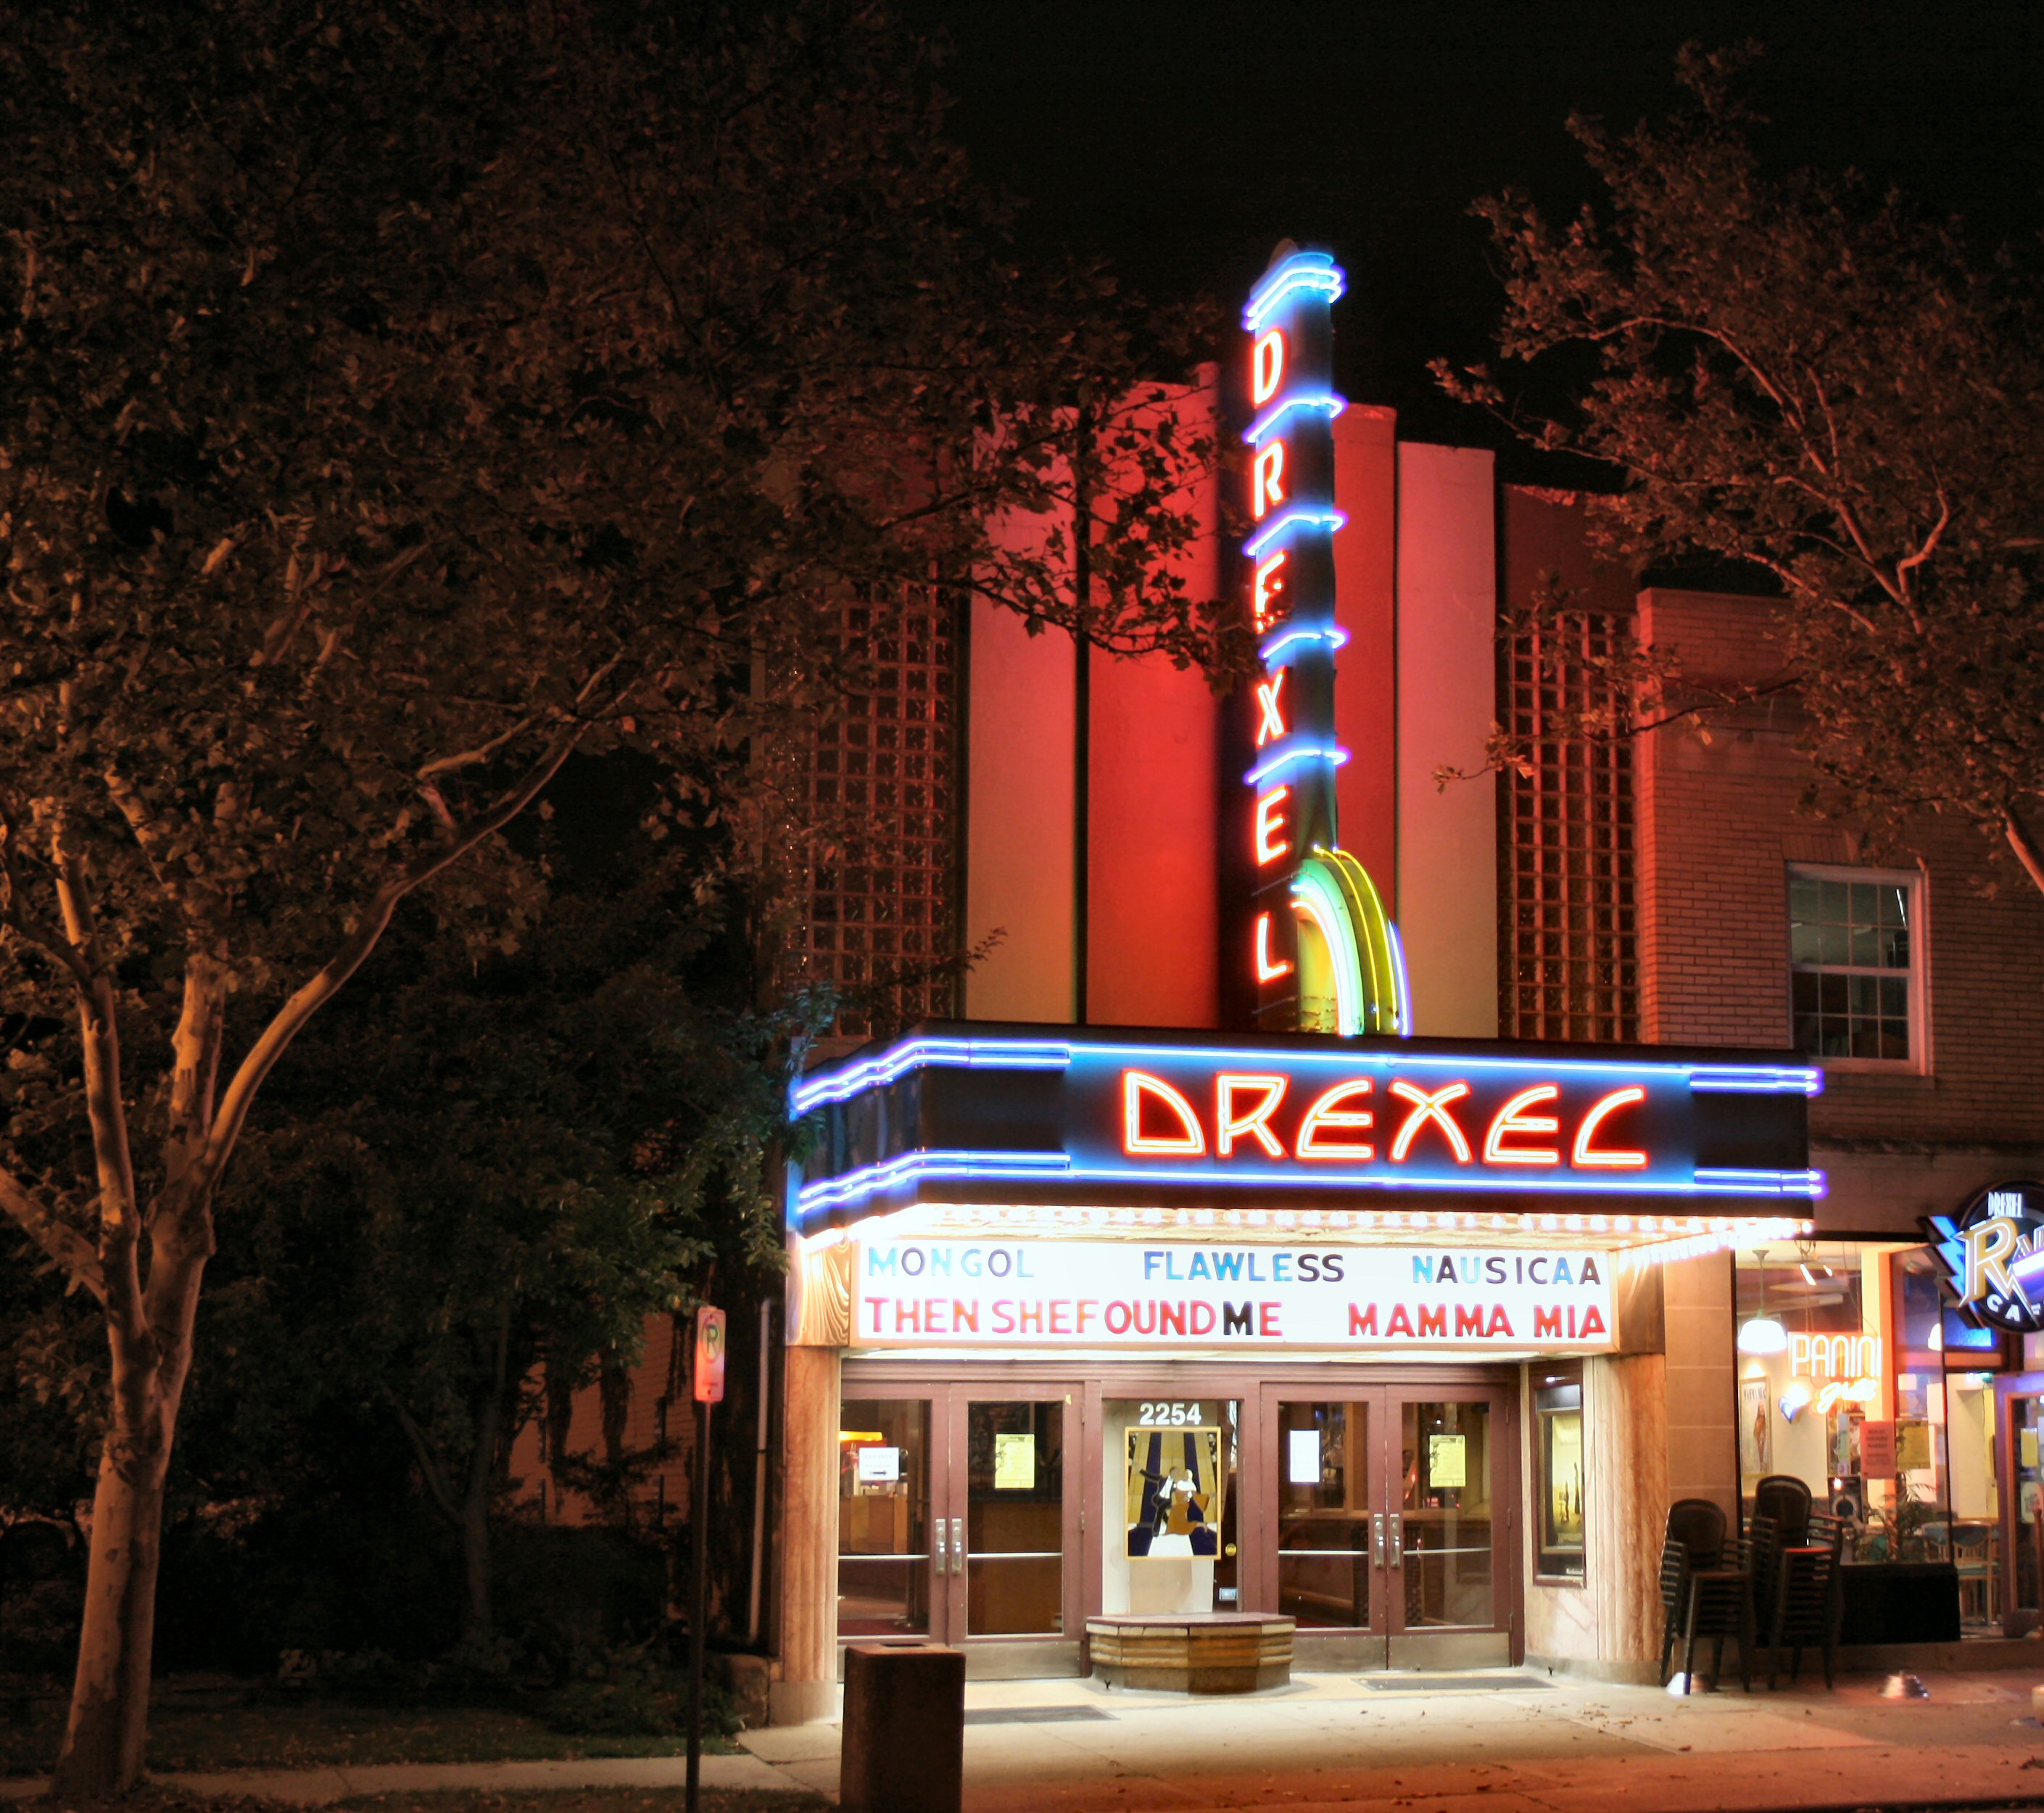 A view of the Drexel Theater's brightly-lit entrance.